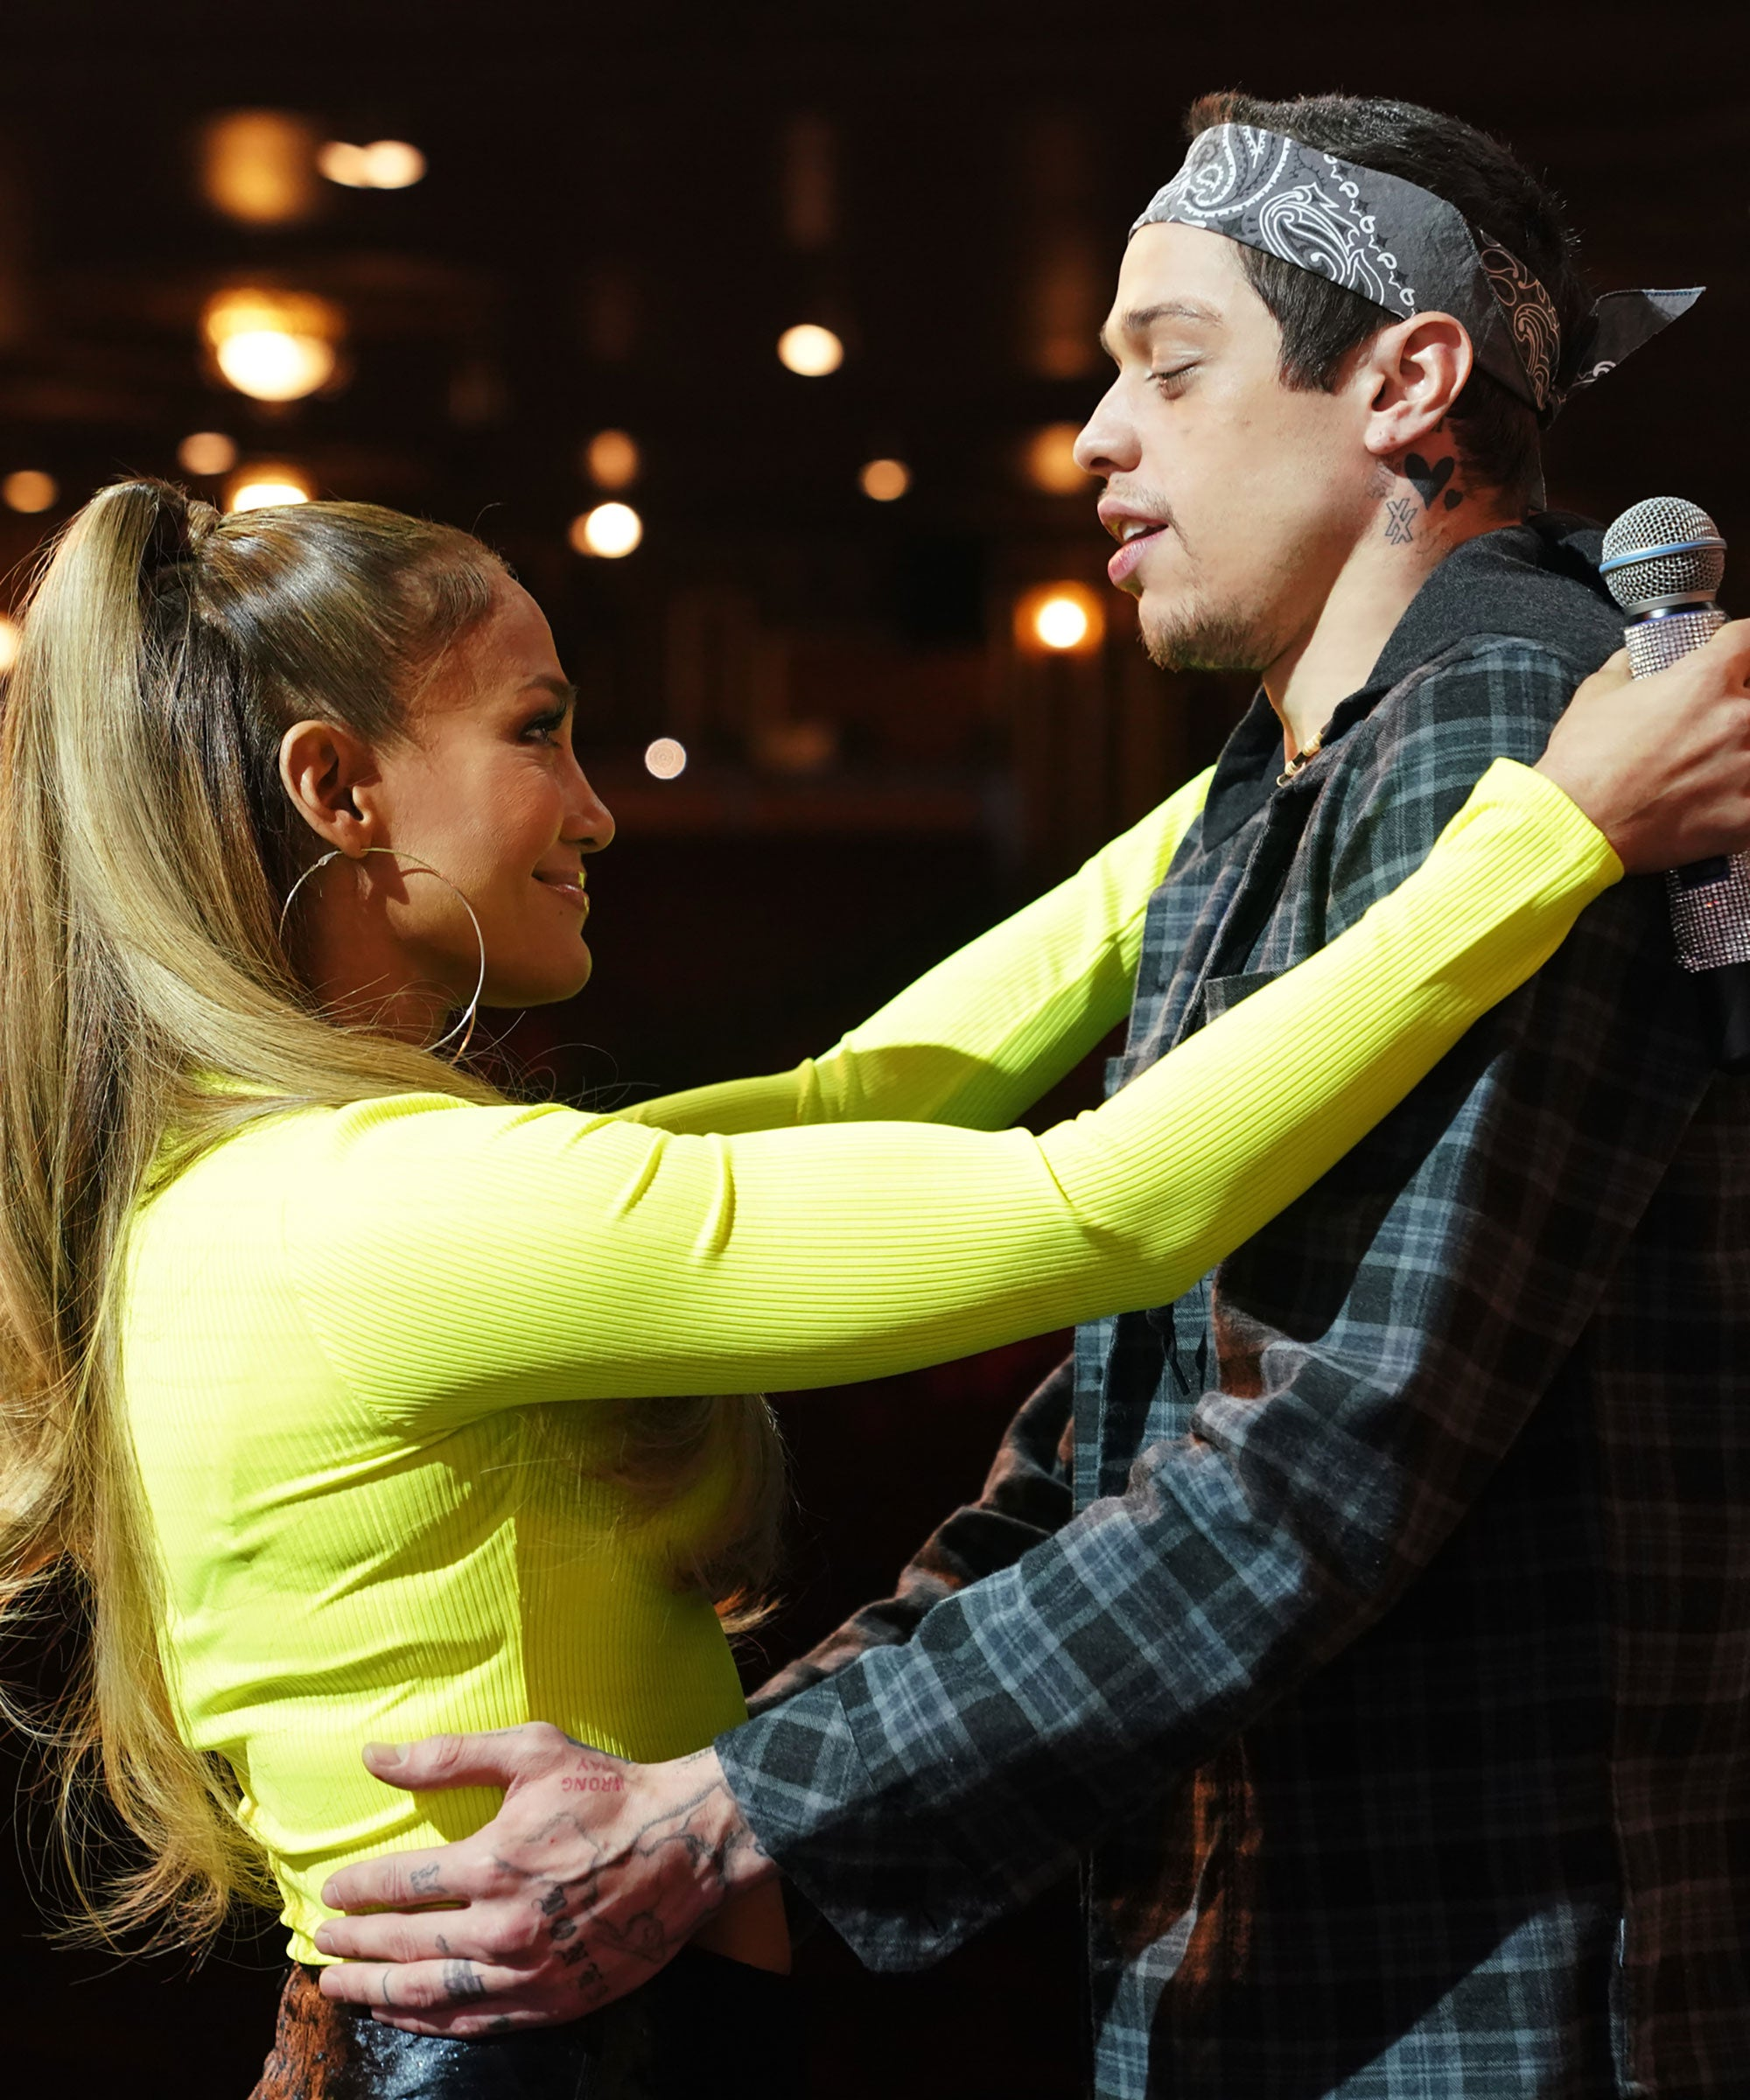 No One, Not Even J.Lo Can Deny The Mysterious Draw Of Pete Davidson's Chad